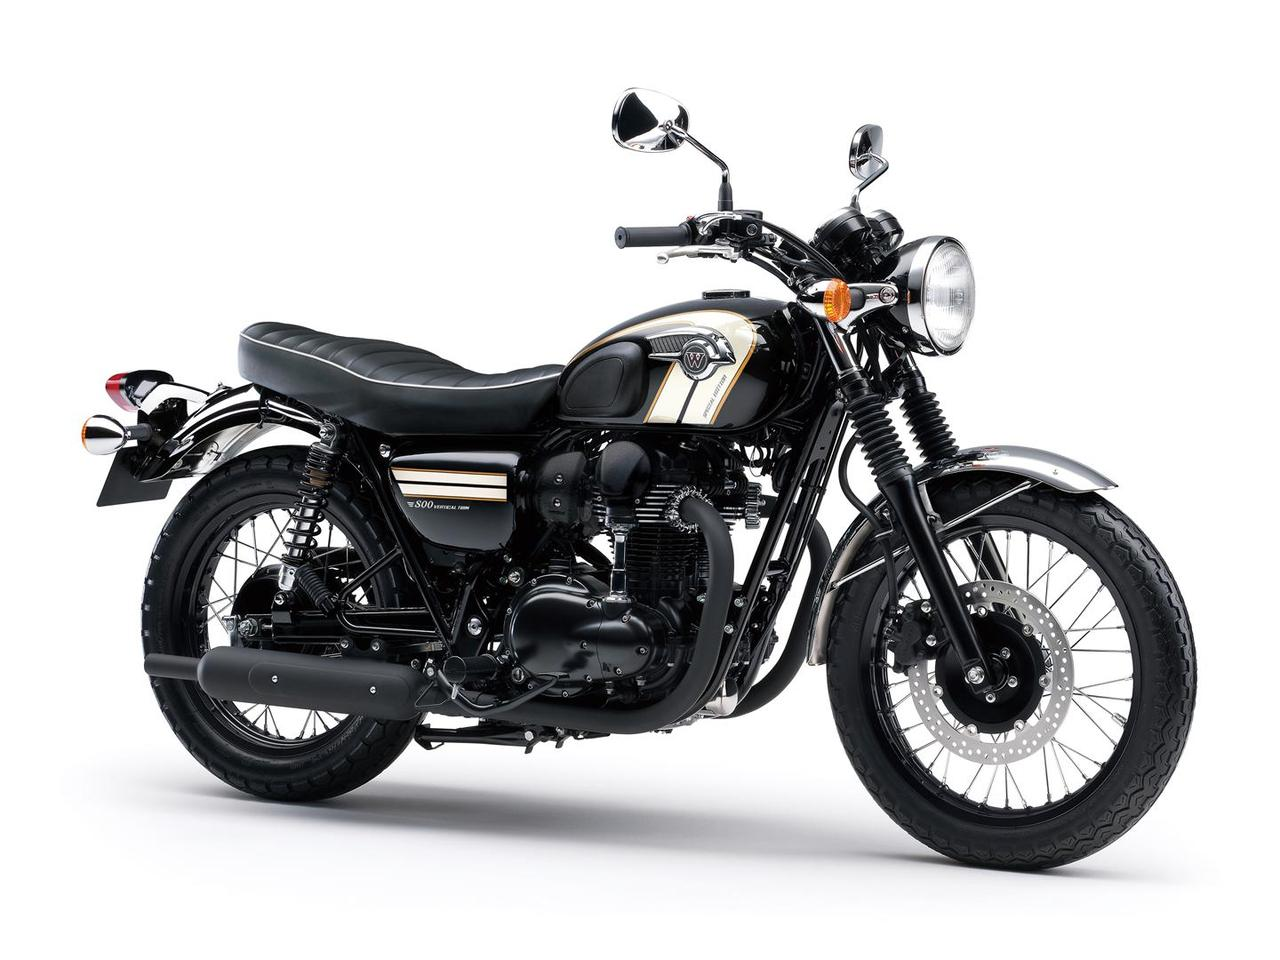 The blackened Special Edition W800 is part of Kawasaki's 2016 line-up